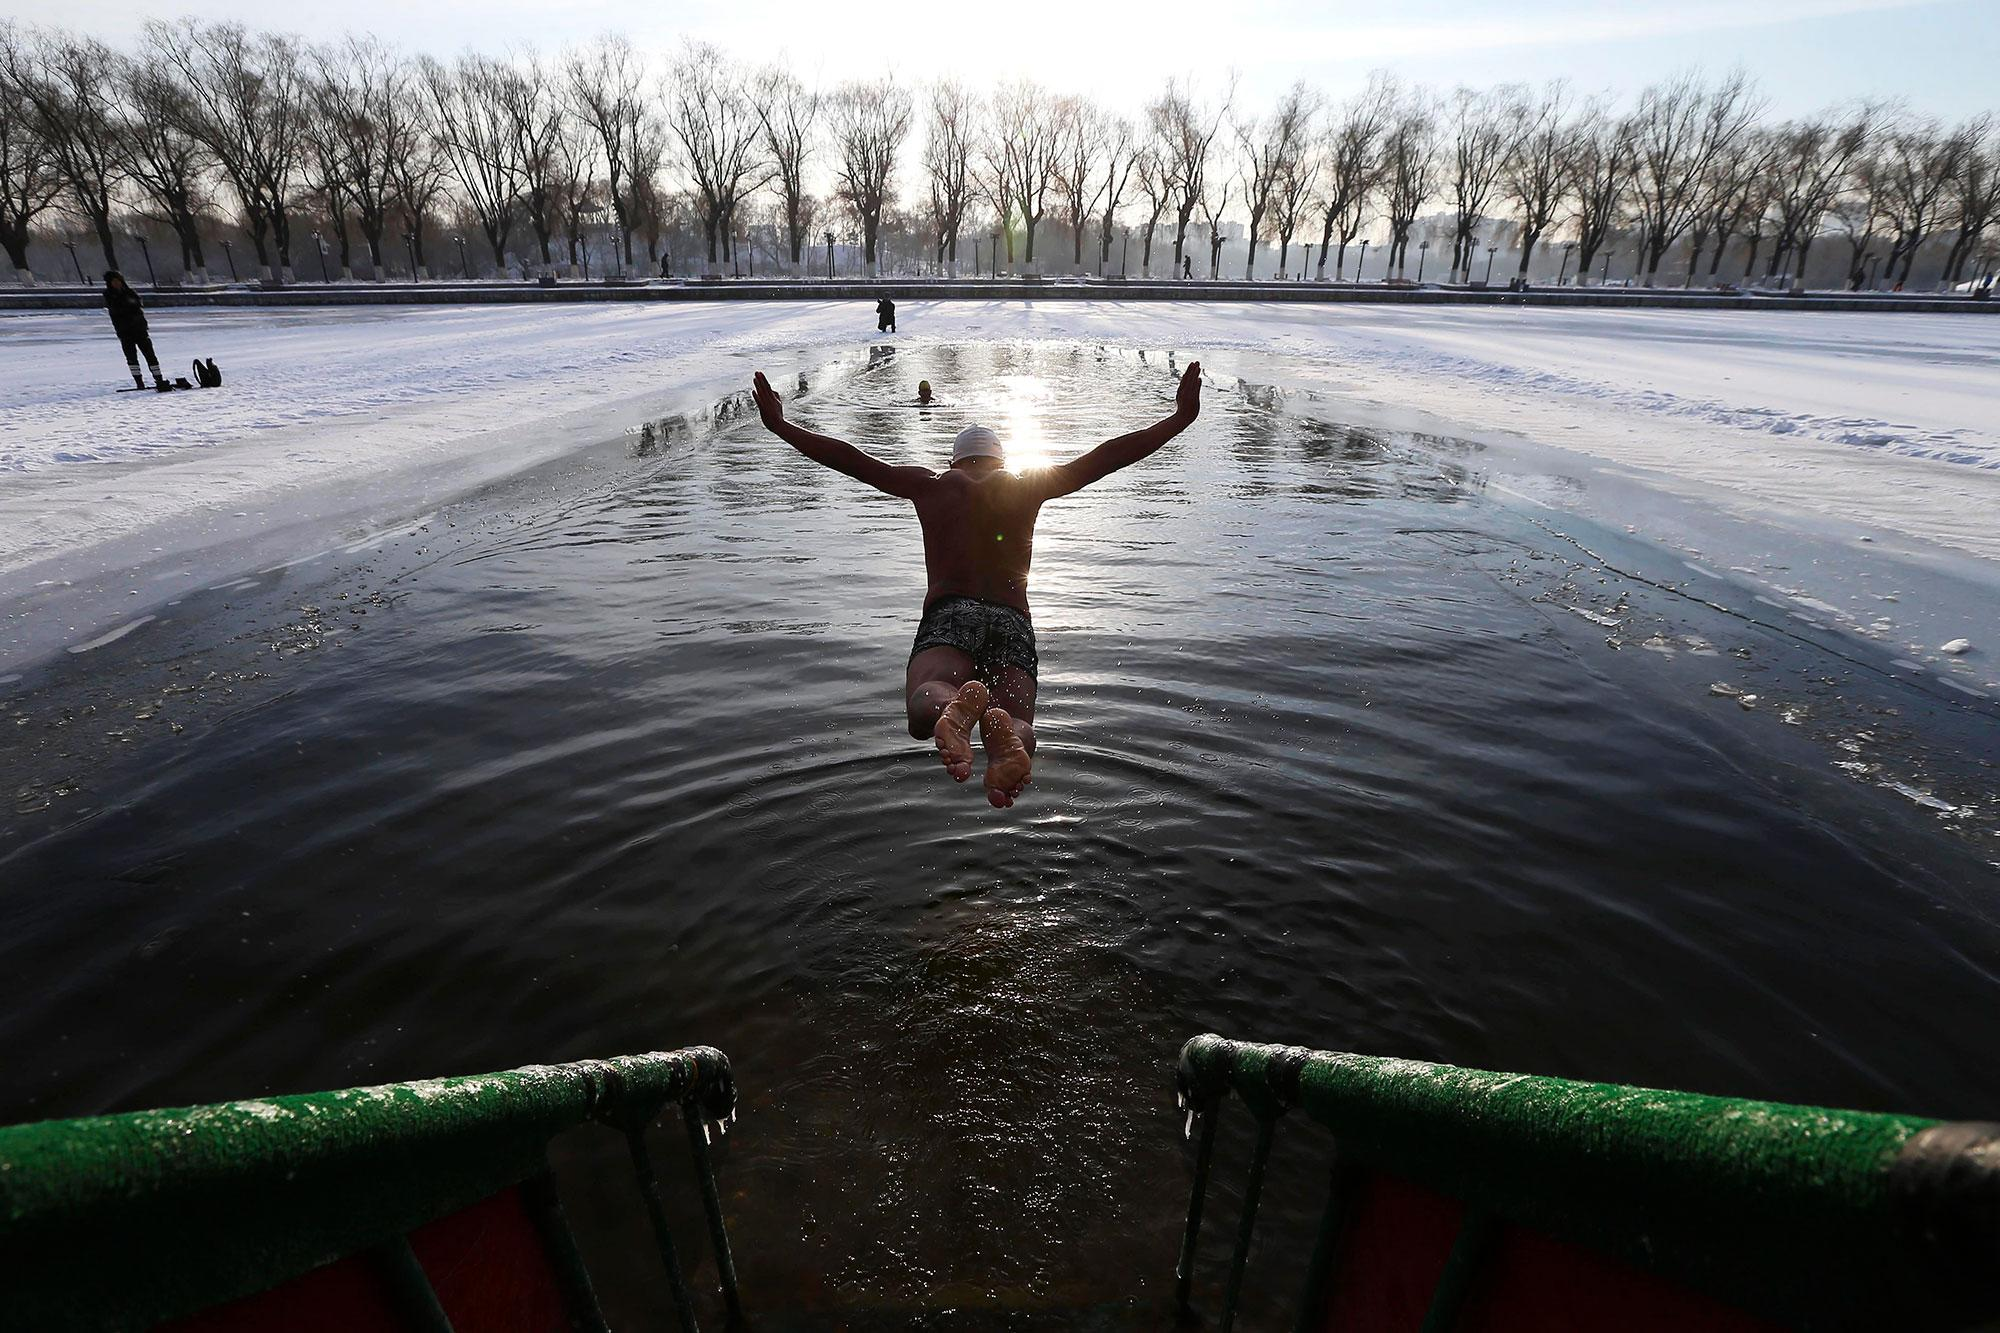 <p>A member of the Shenyang Beiling Winter Swimming team swims in a frozen lake in minus 20 degrees Celsius temperatures at Beiling park in Shenyang, Liaoning Province, China on Dec. 13, 2016. Ranging from from age 40 to 83, the 86 members of the Shenyang Beiling Winter Swimming team swim almost everyday even during minus freezing temperatures. Winter swimming is known to have many health benefits including improving blood circulation and heart conditions. (Photo: Tian Weitao/EPA) </p>